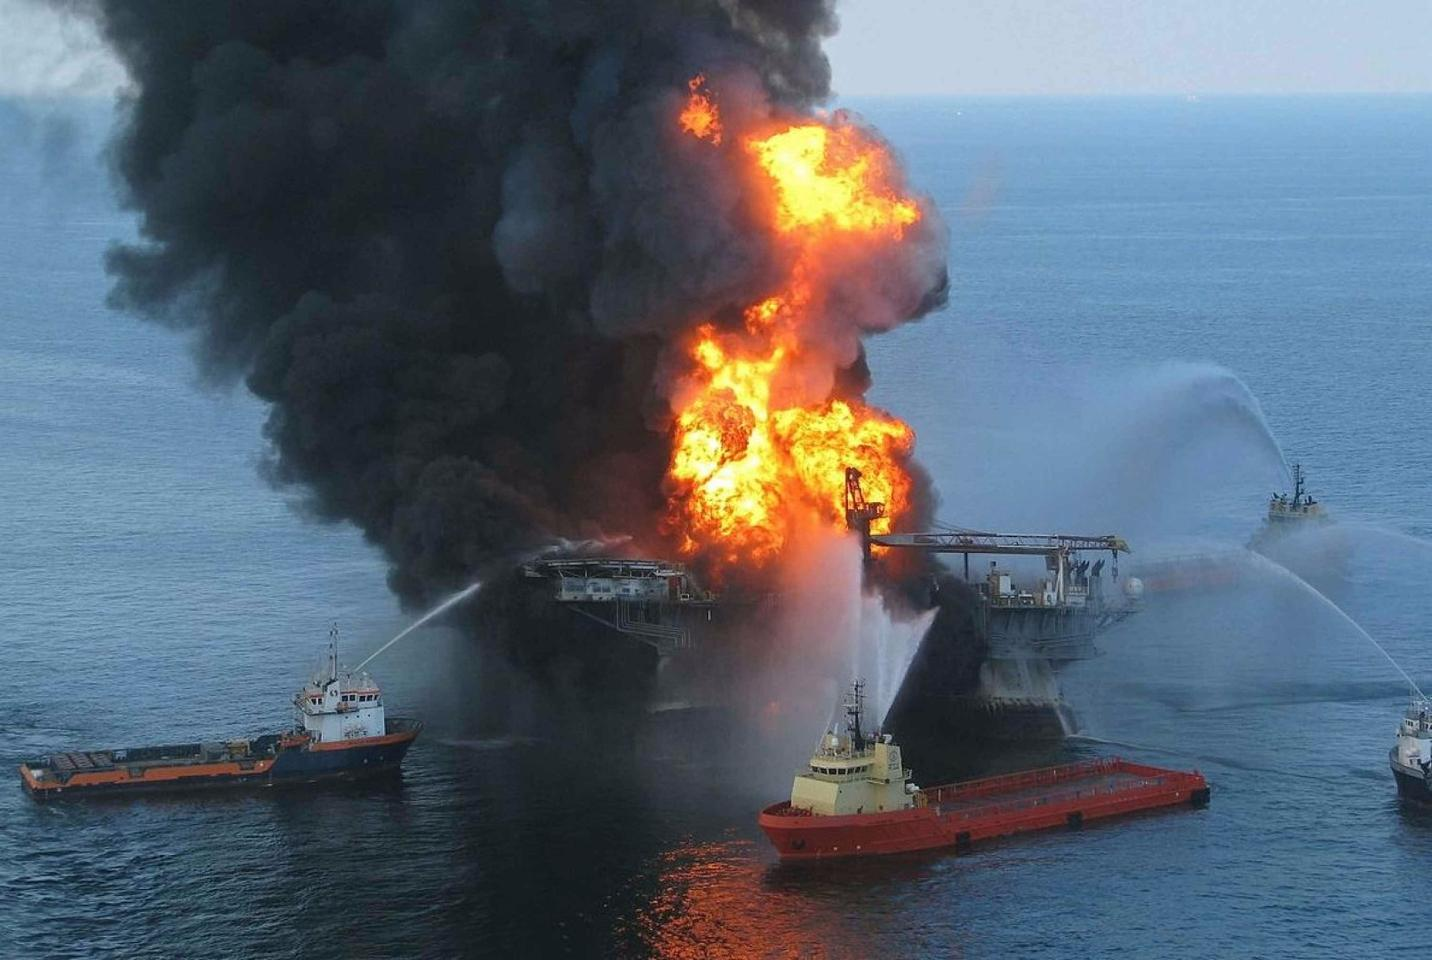 The results of the study show that on average, households were happy to pay $152 for aprogram to prevent environmental damage from BP-likeoil spills in the future